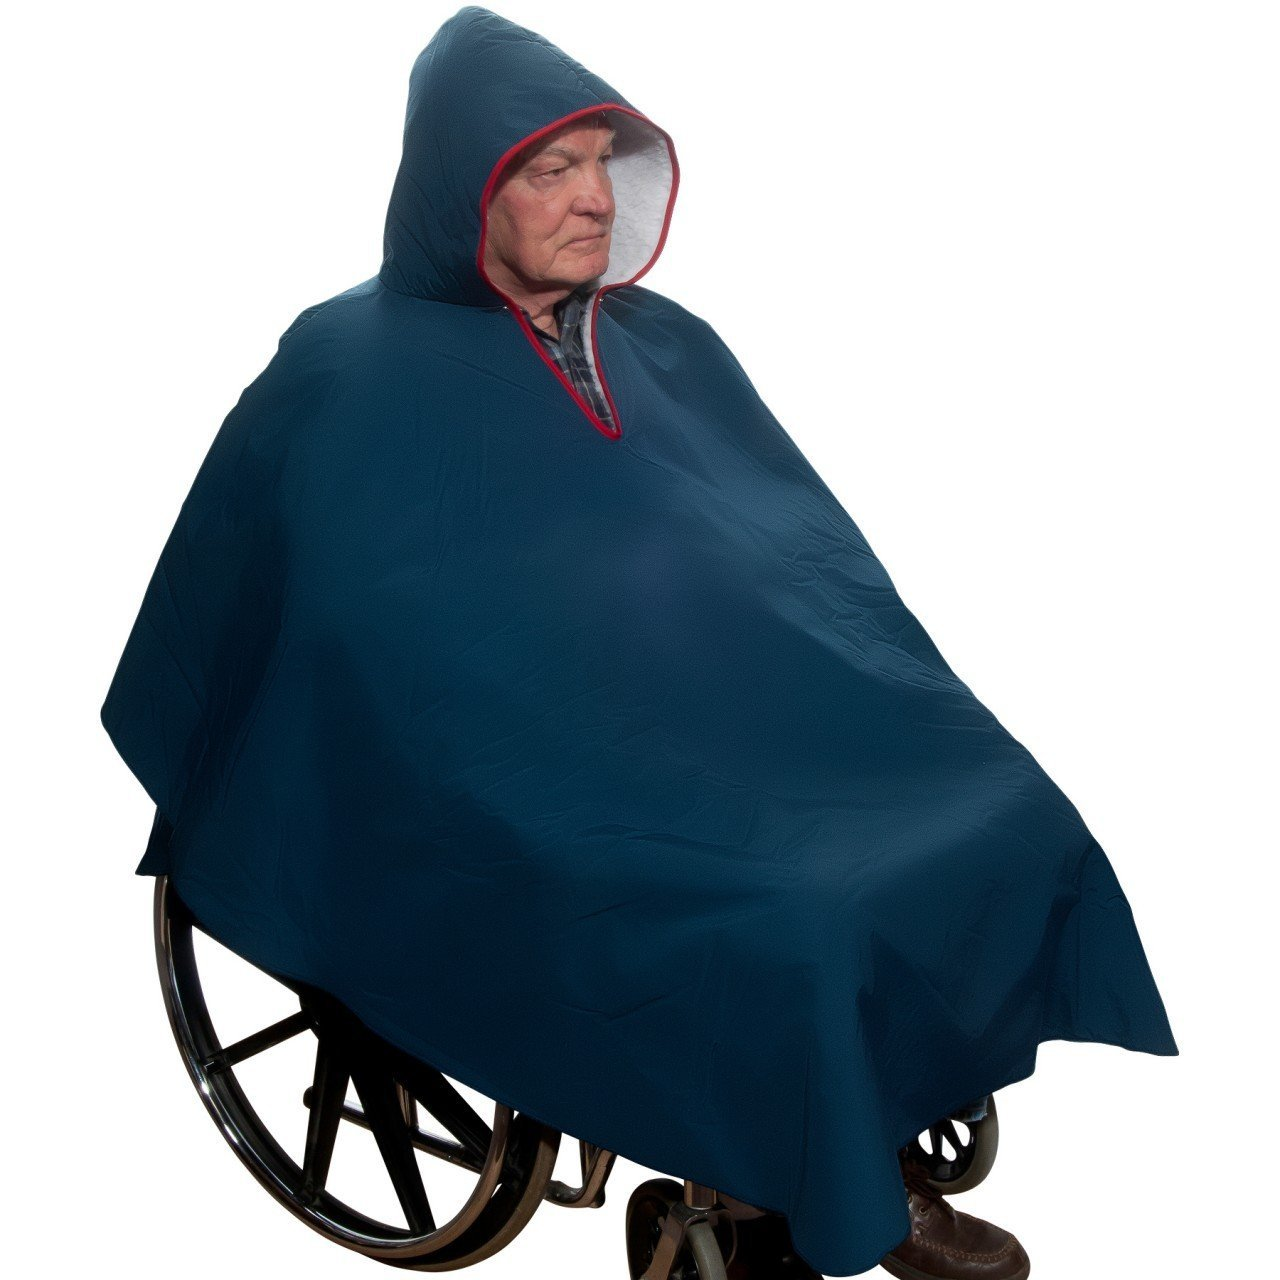 Warm Wheelchair Poncho with Sherpa-Like Lining (Navy Blue) by Unknown (Image #1)